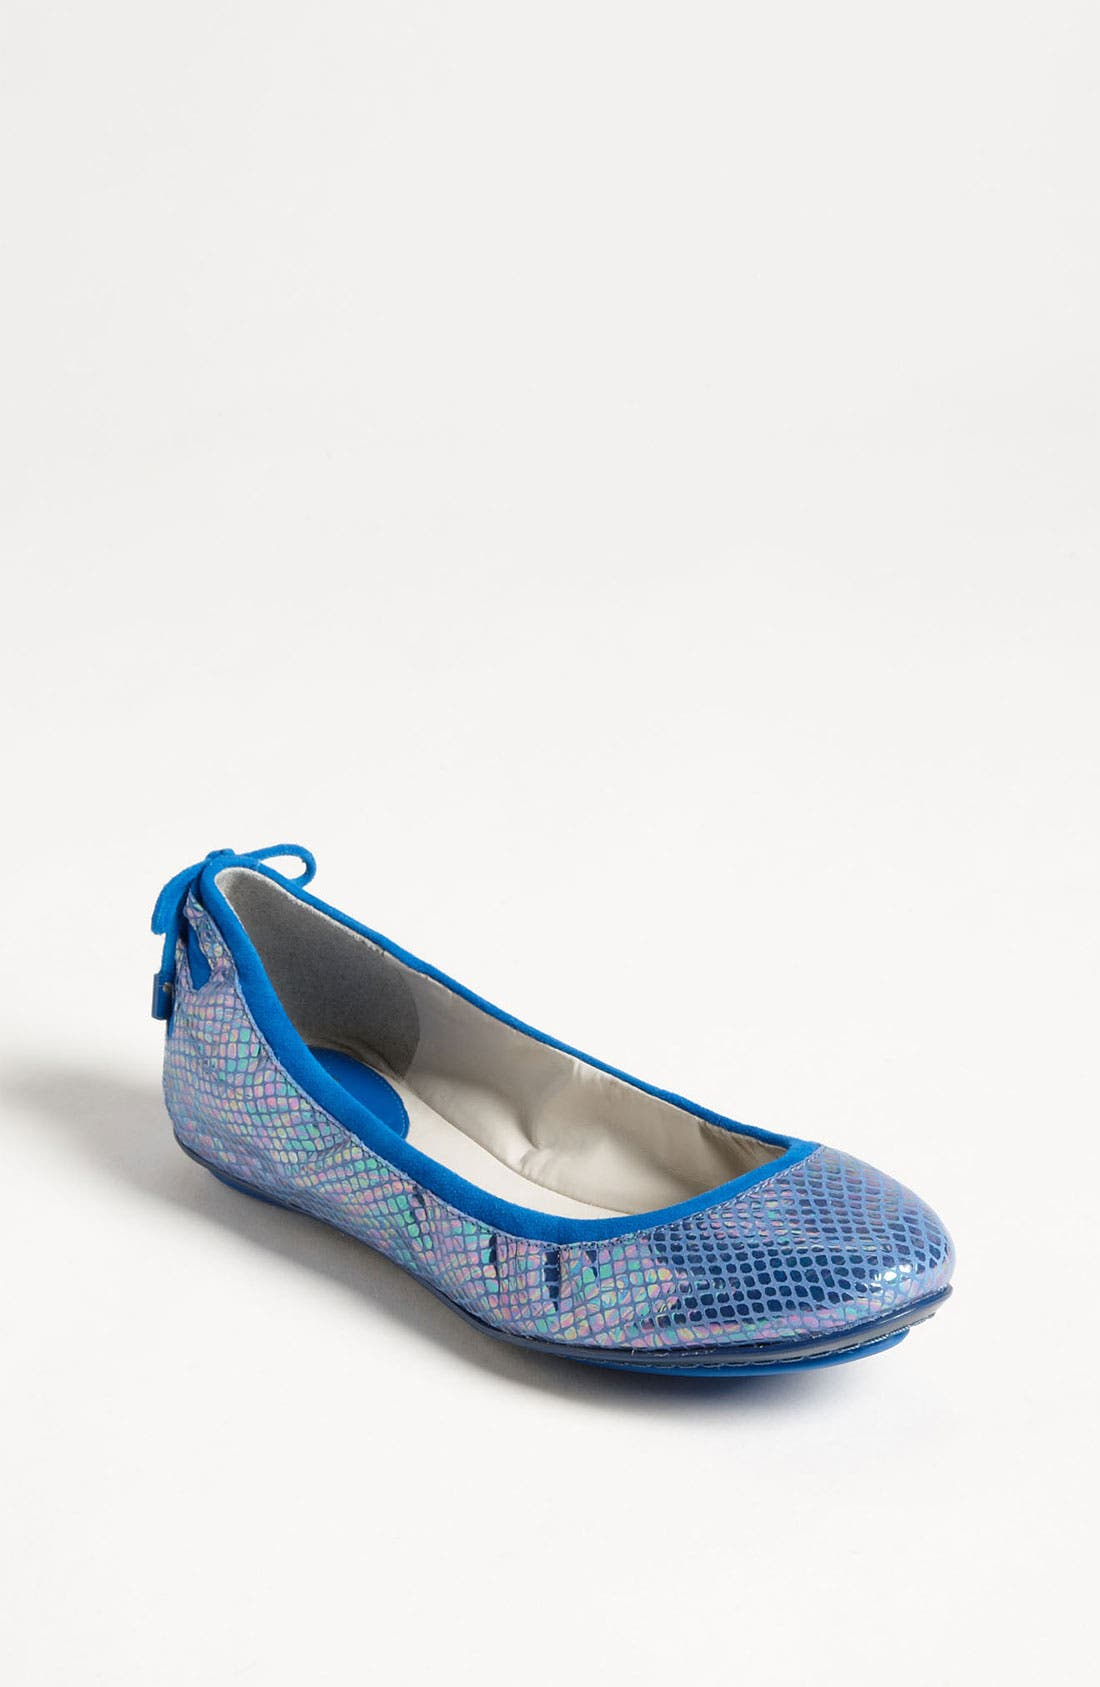 ,                             Maria Sharapova by Cole Haan 'Air Bacara' Flat,                             Main thumbnail 60, color,                             400